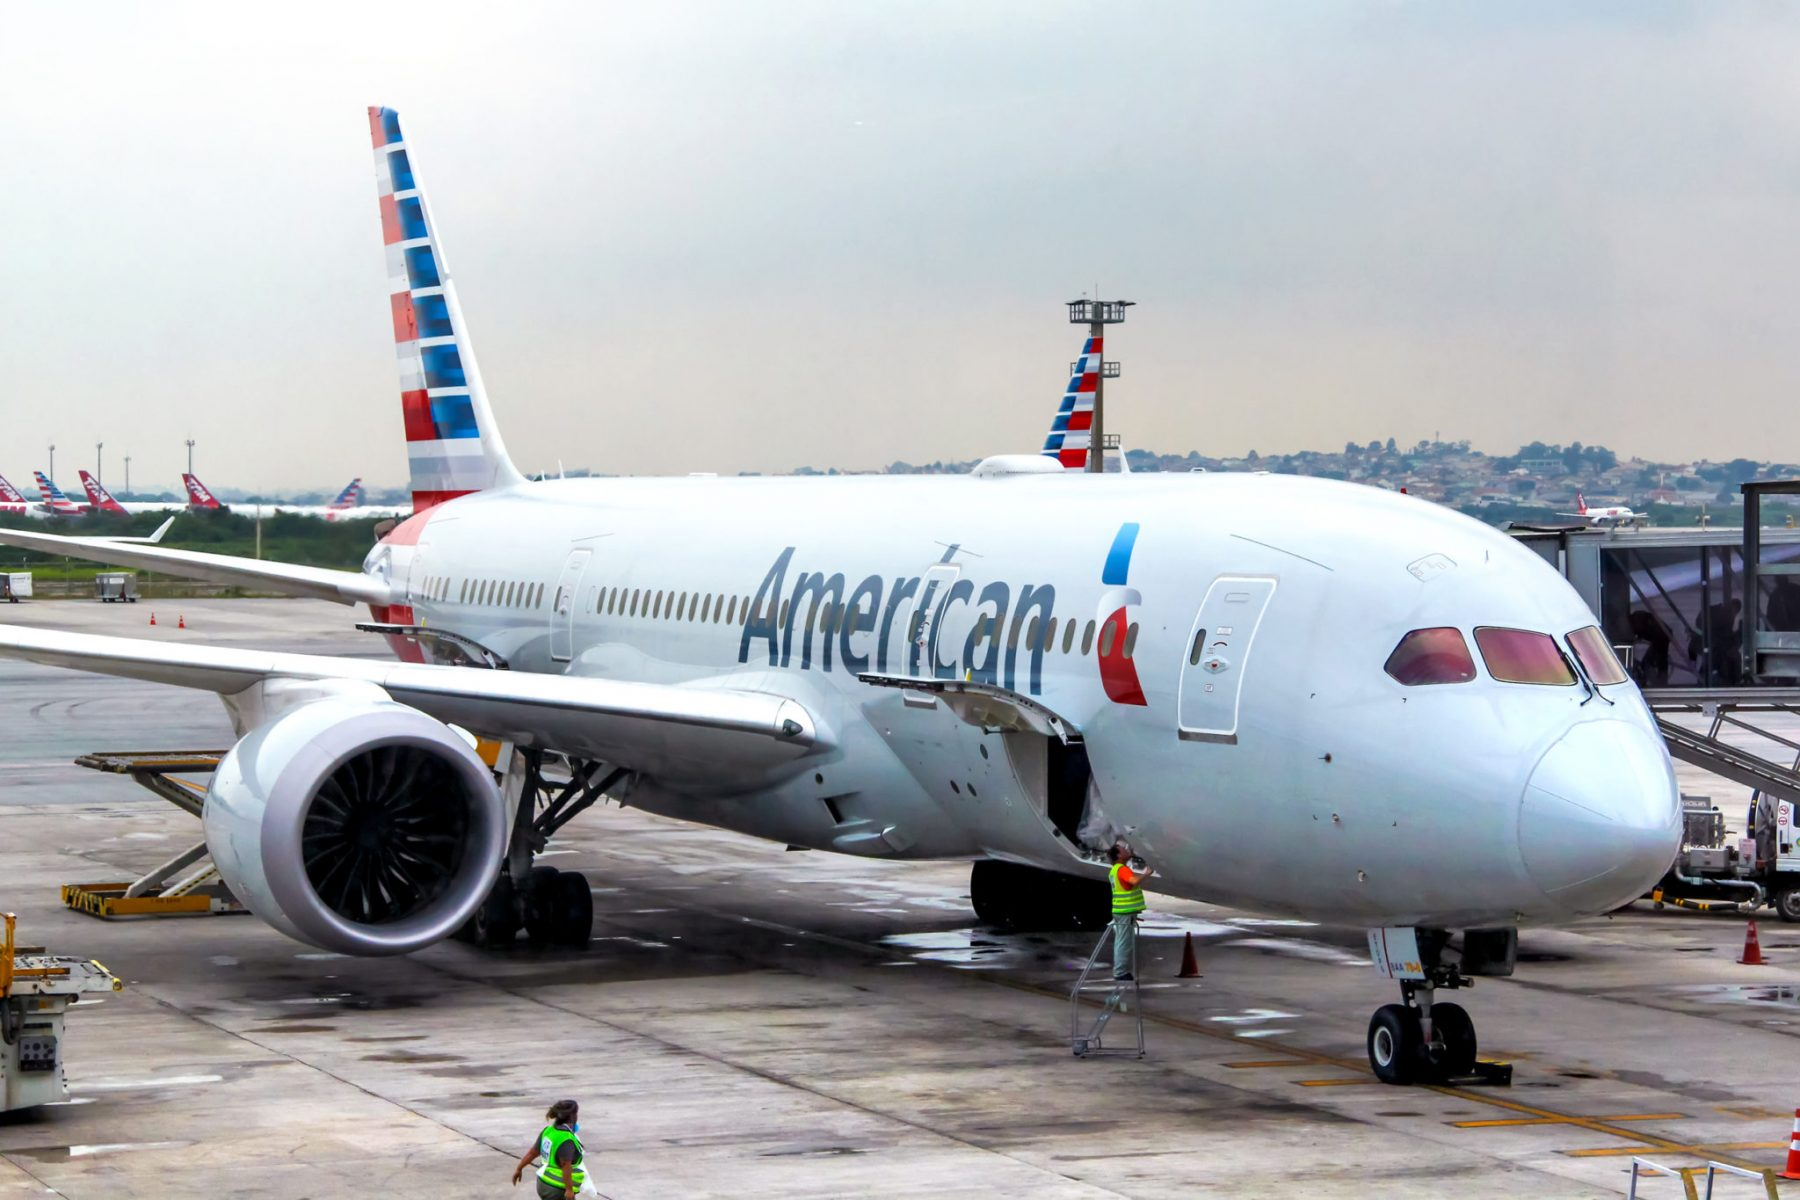 Use American Airlines Miles Towards Off-Peak MileSAAver Travel to Save Thousands of Miles Over Normal Award Prices